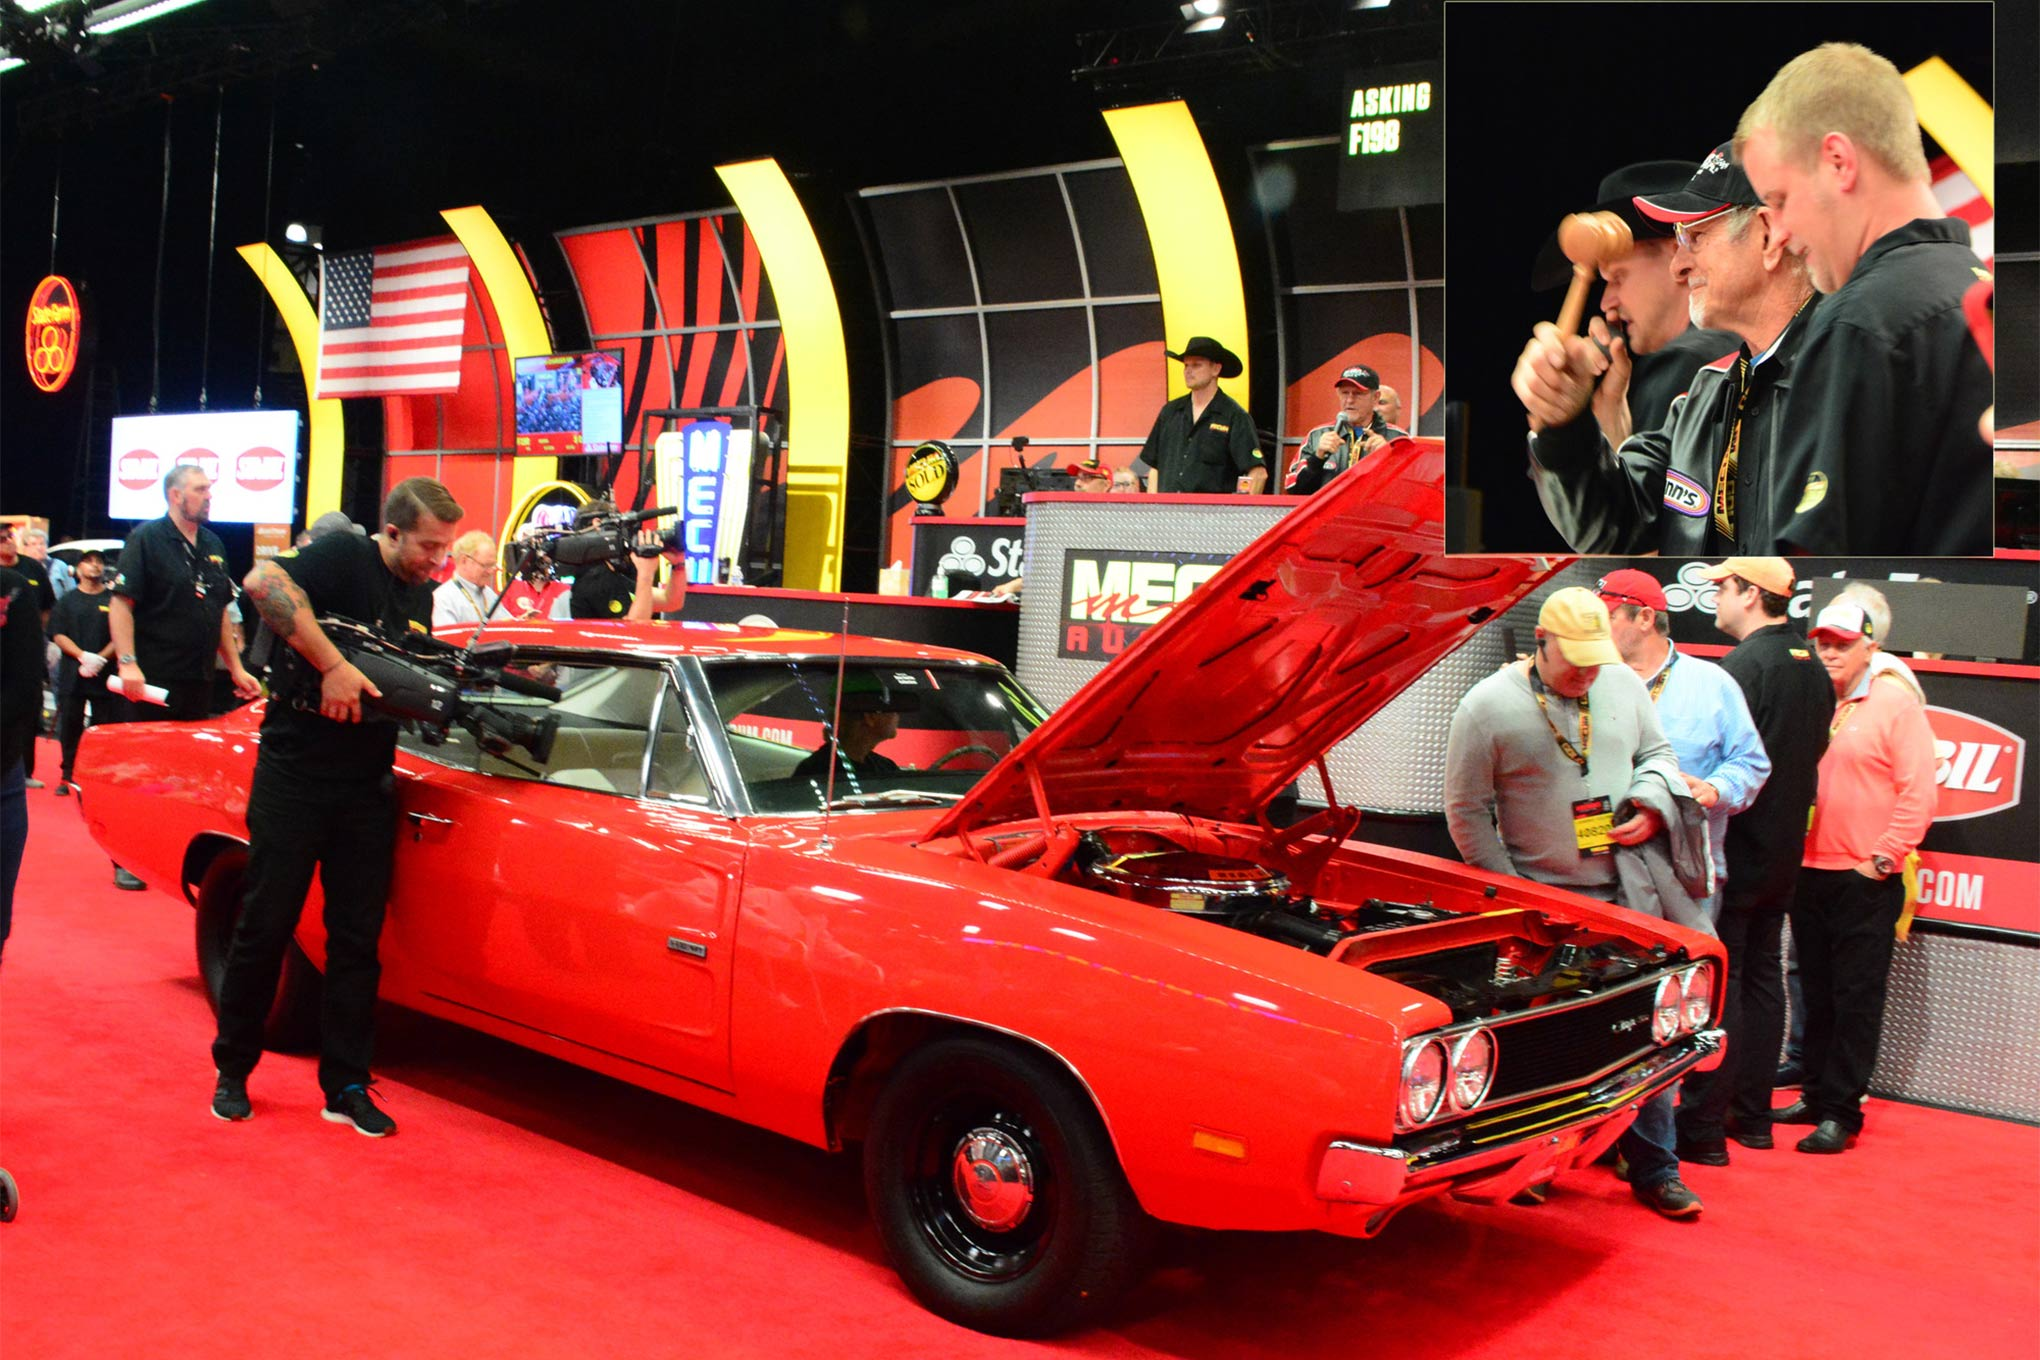 """A highlight for many was seeing Don Garlits help sell his 1969 Hemi Charger 500 on Friday. Big Daddy himself handled the honorary gavel action when the car was called """"Sold!"""" at $155,000."""